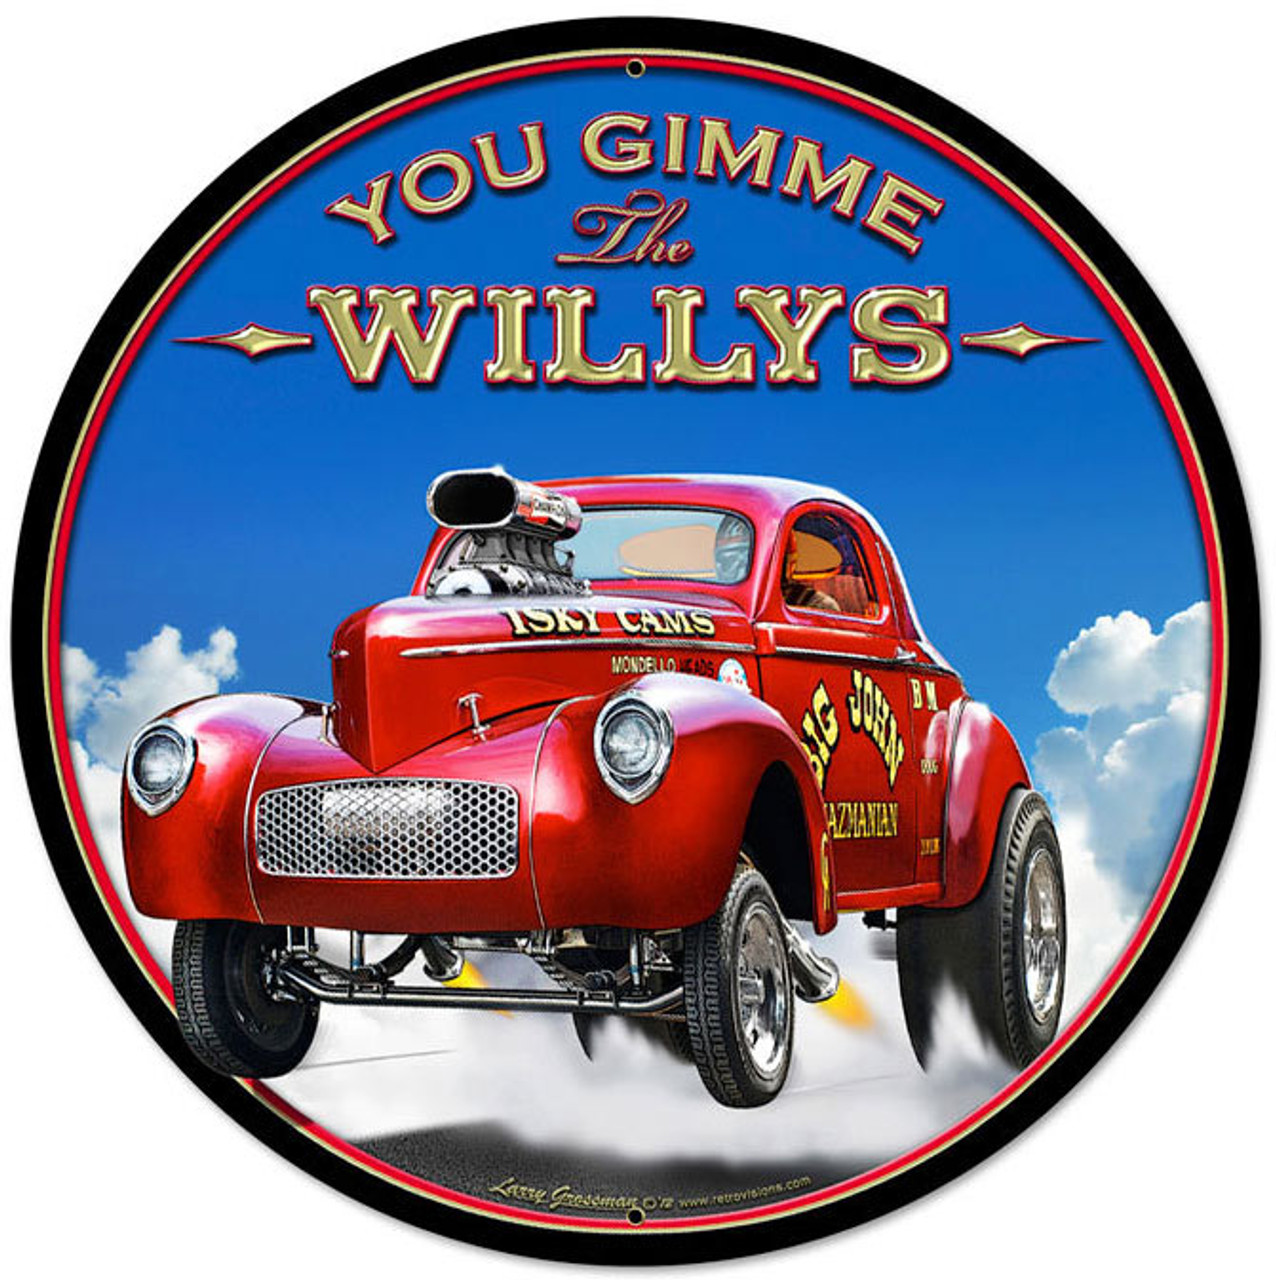 Retro Gimme The Willys Round Metal Sign 28 x 28 Inches